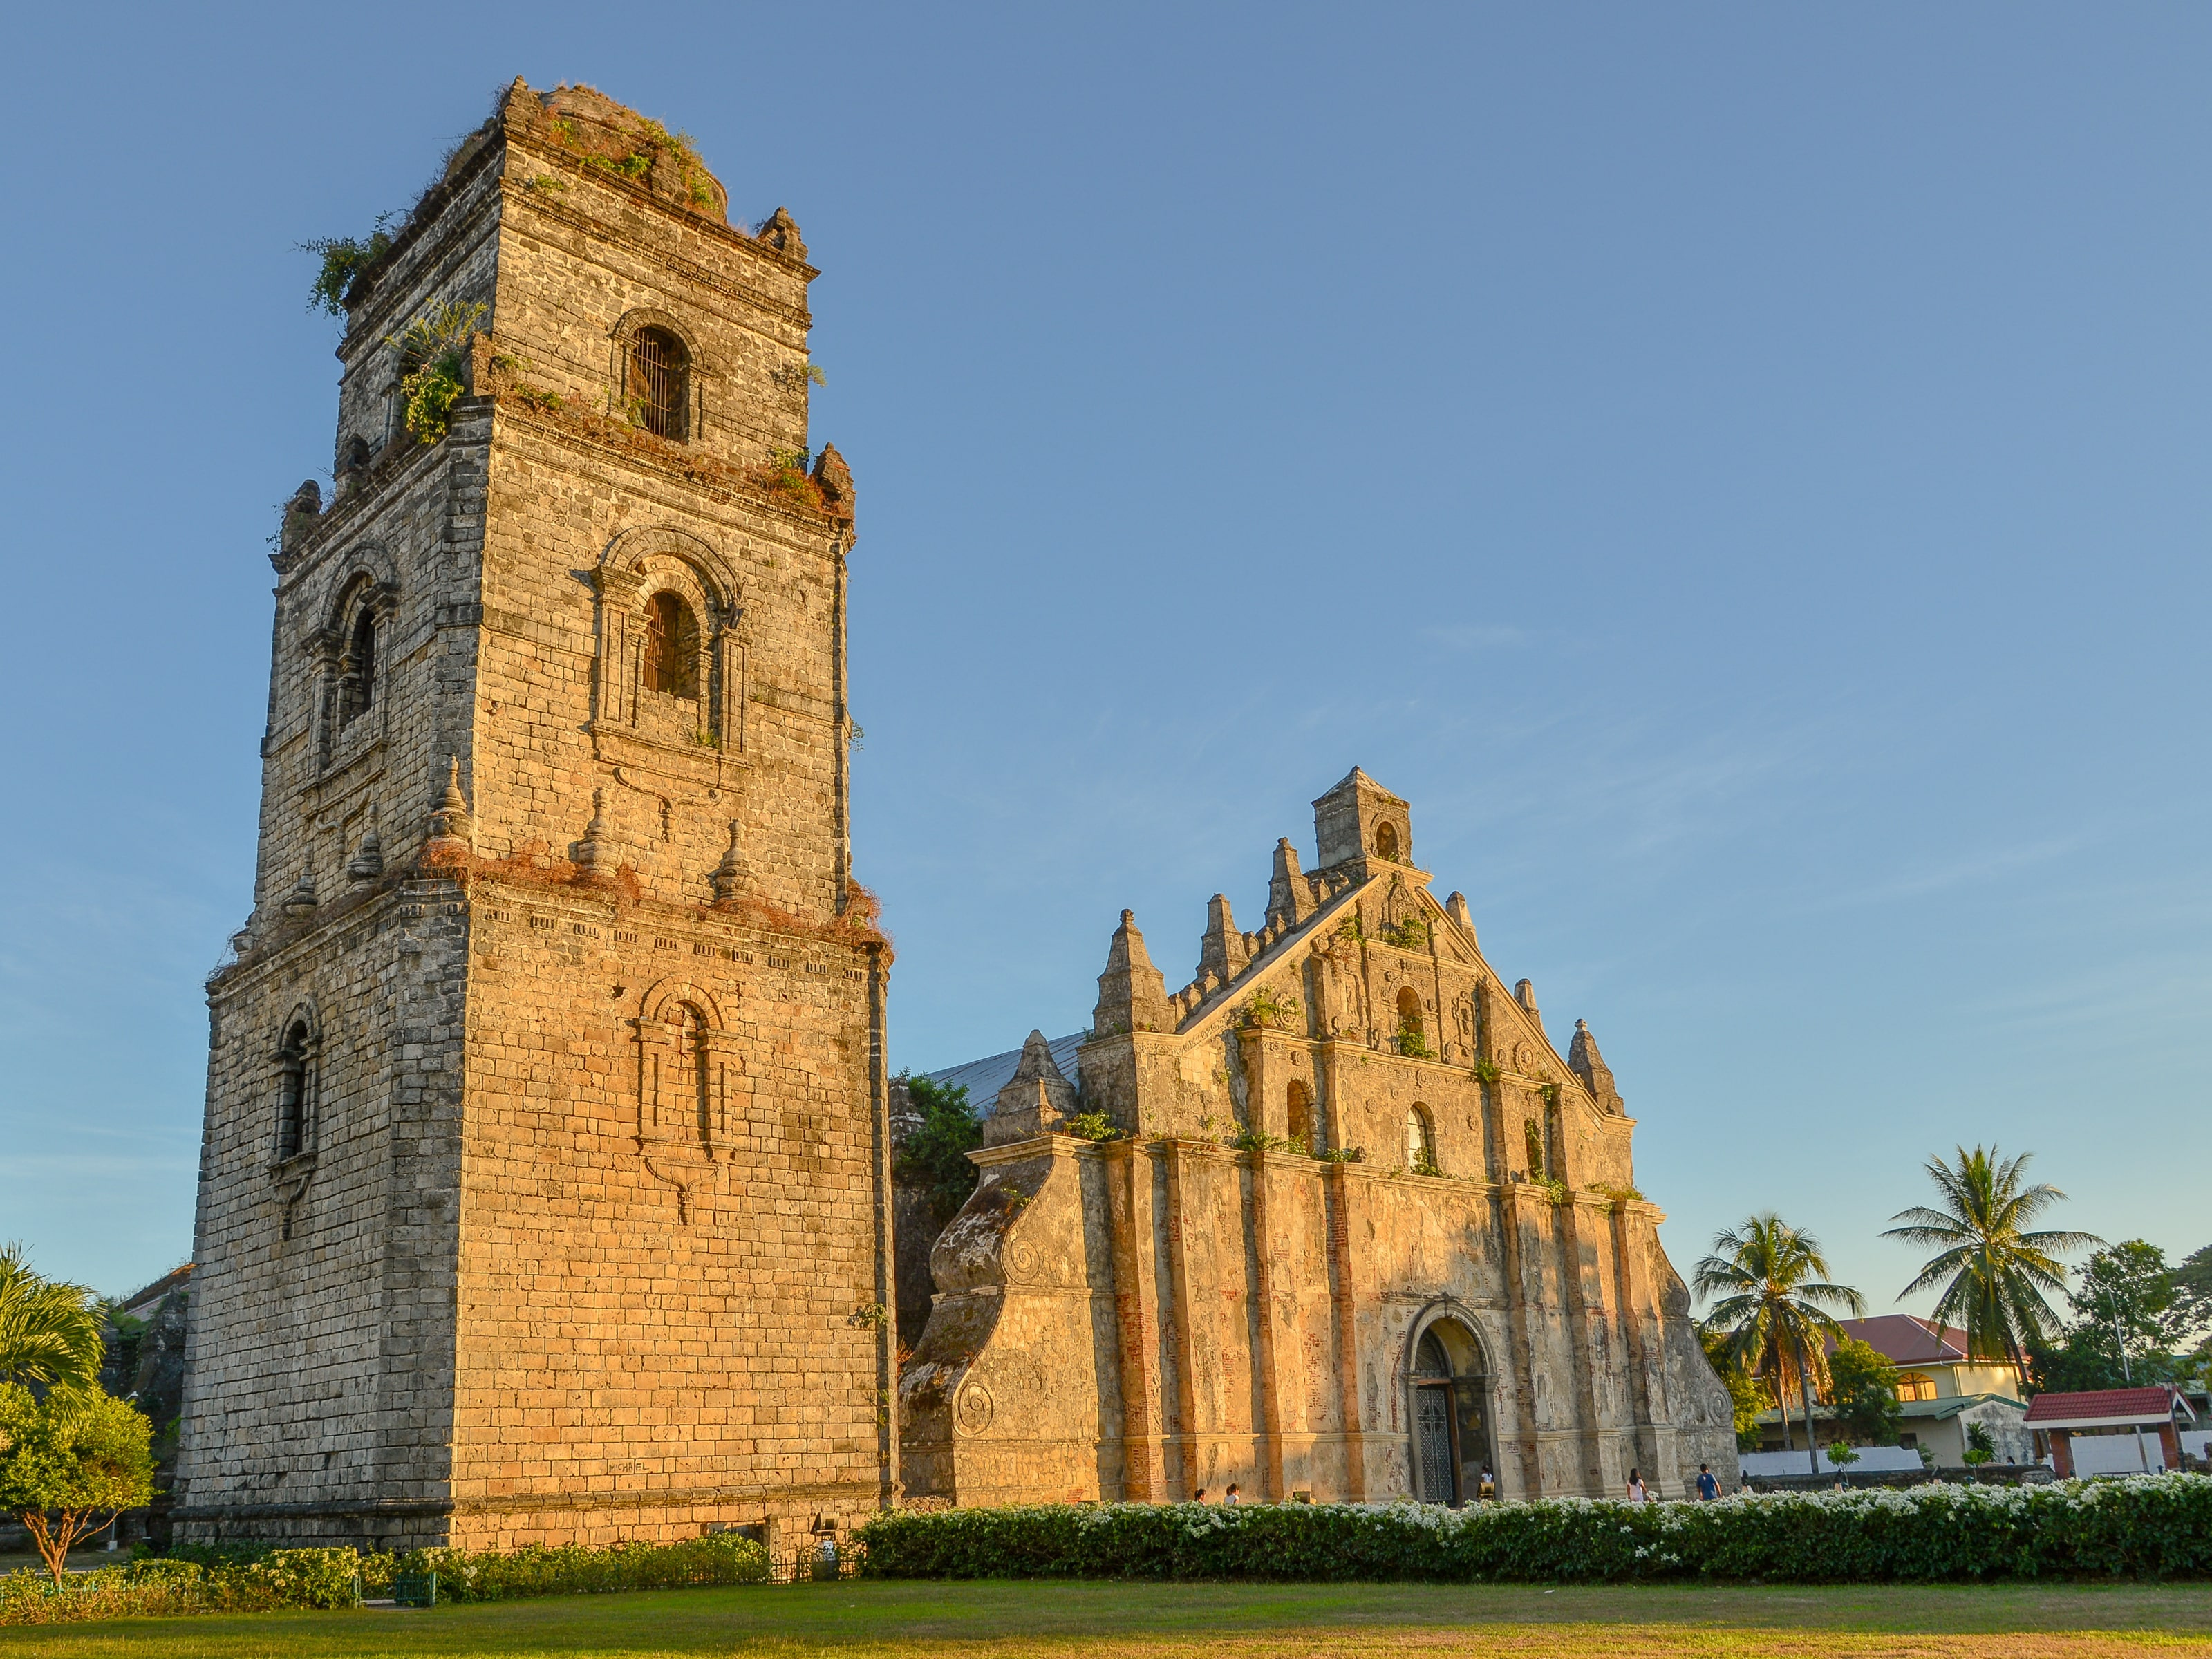 Paoay church is one of the oldest churches in the Philippines